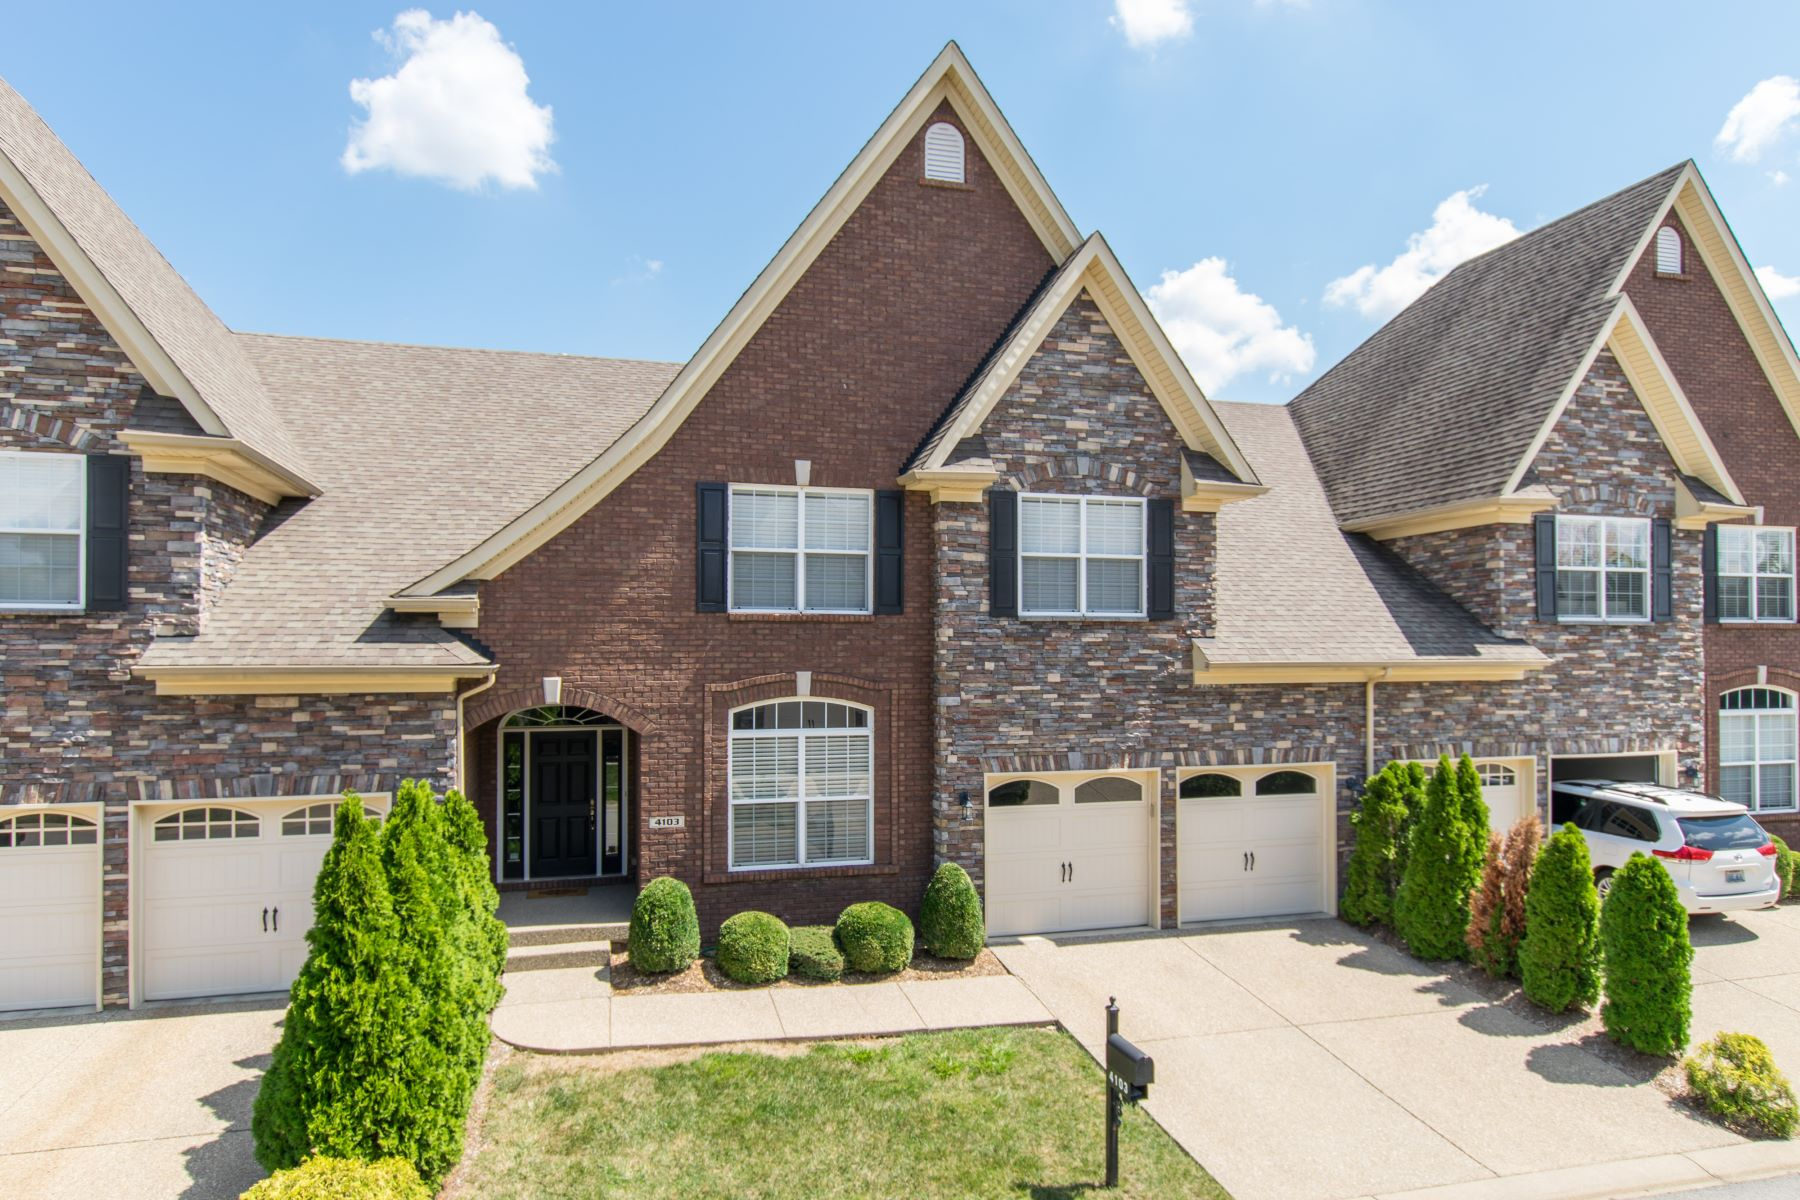 Townhouse for Sale at 4103 Ethan Cole Court 4103 Ethan Cole Court Prospect, Kentucky 40059 United States